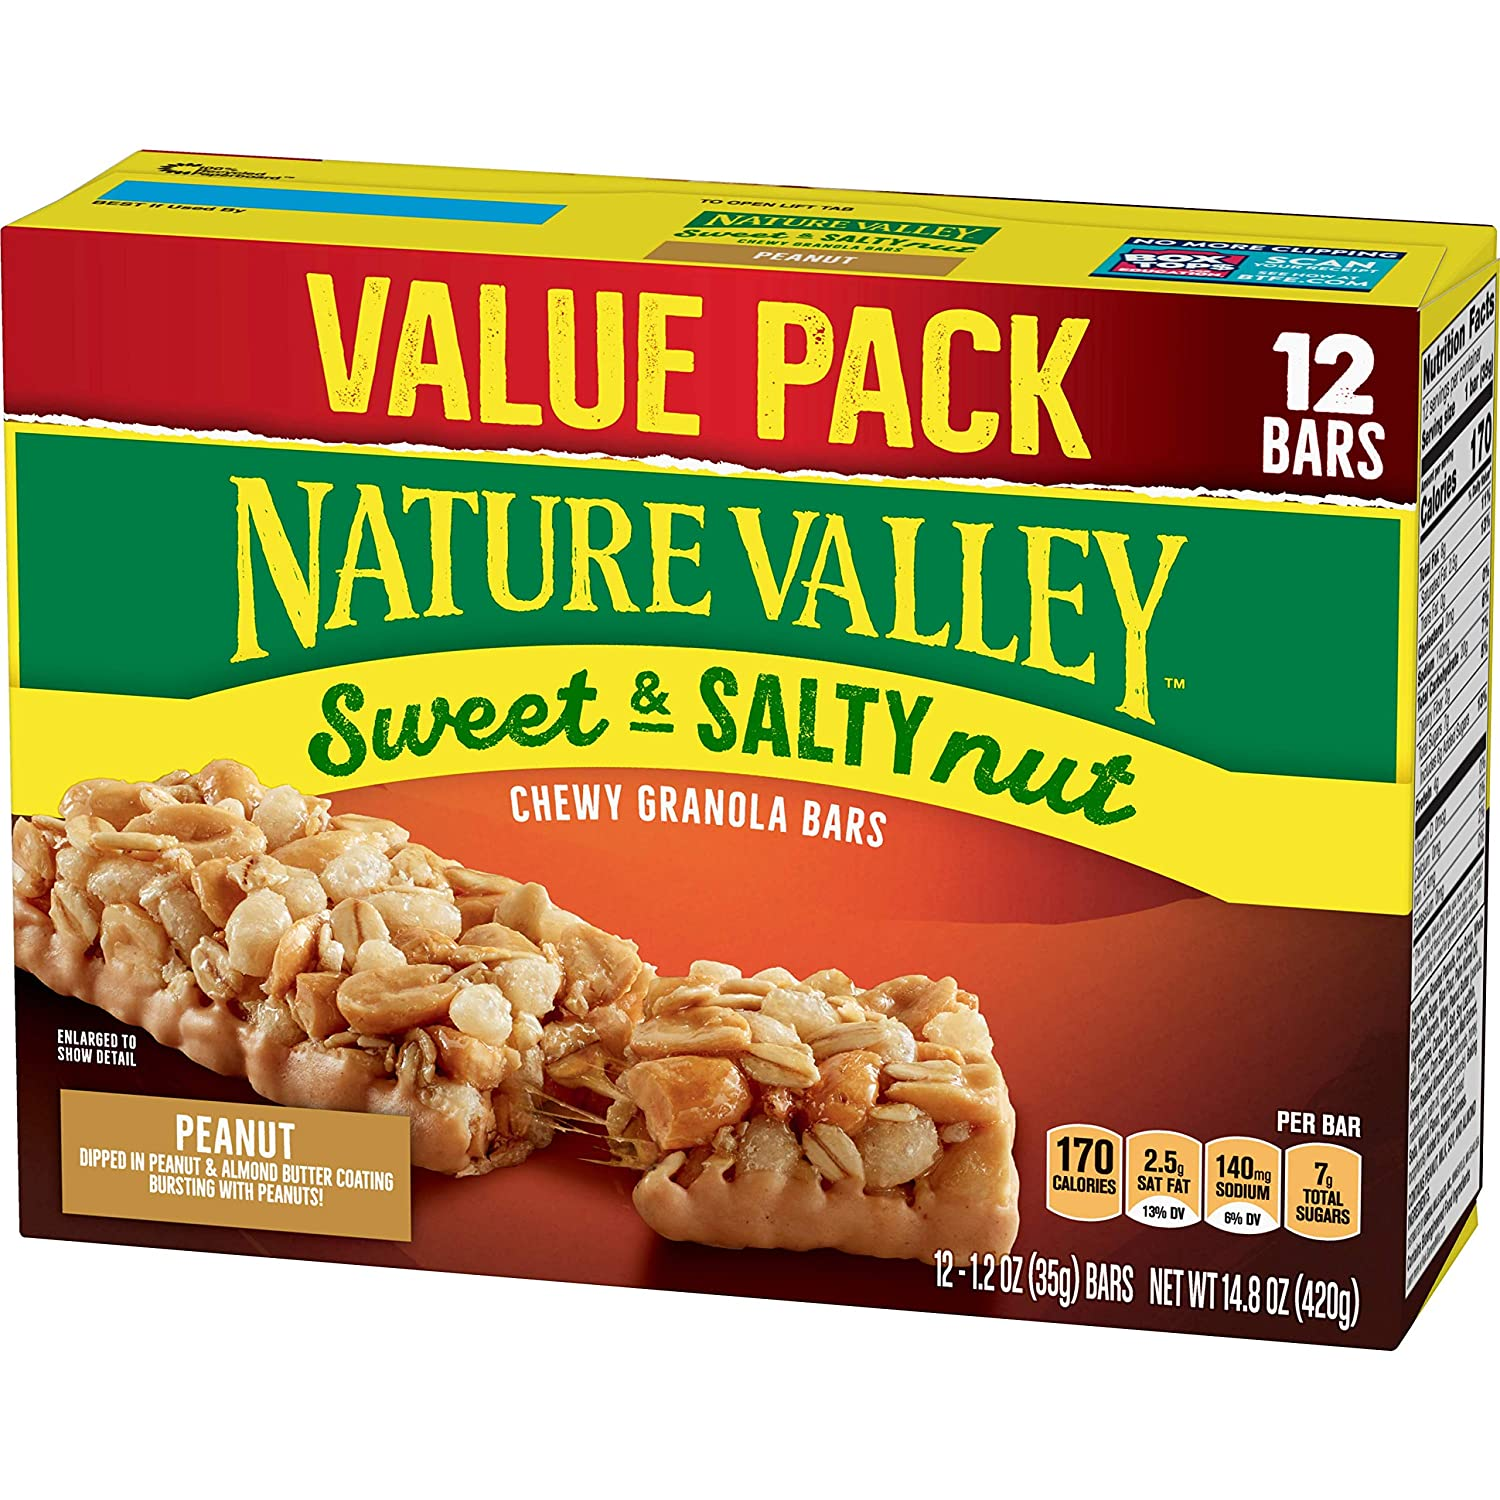 Nature Valley Granola Bars, Sweet and Salty Nut, 12 ct Only $2.70!